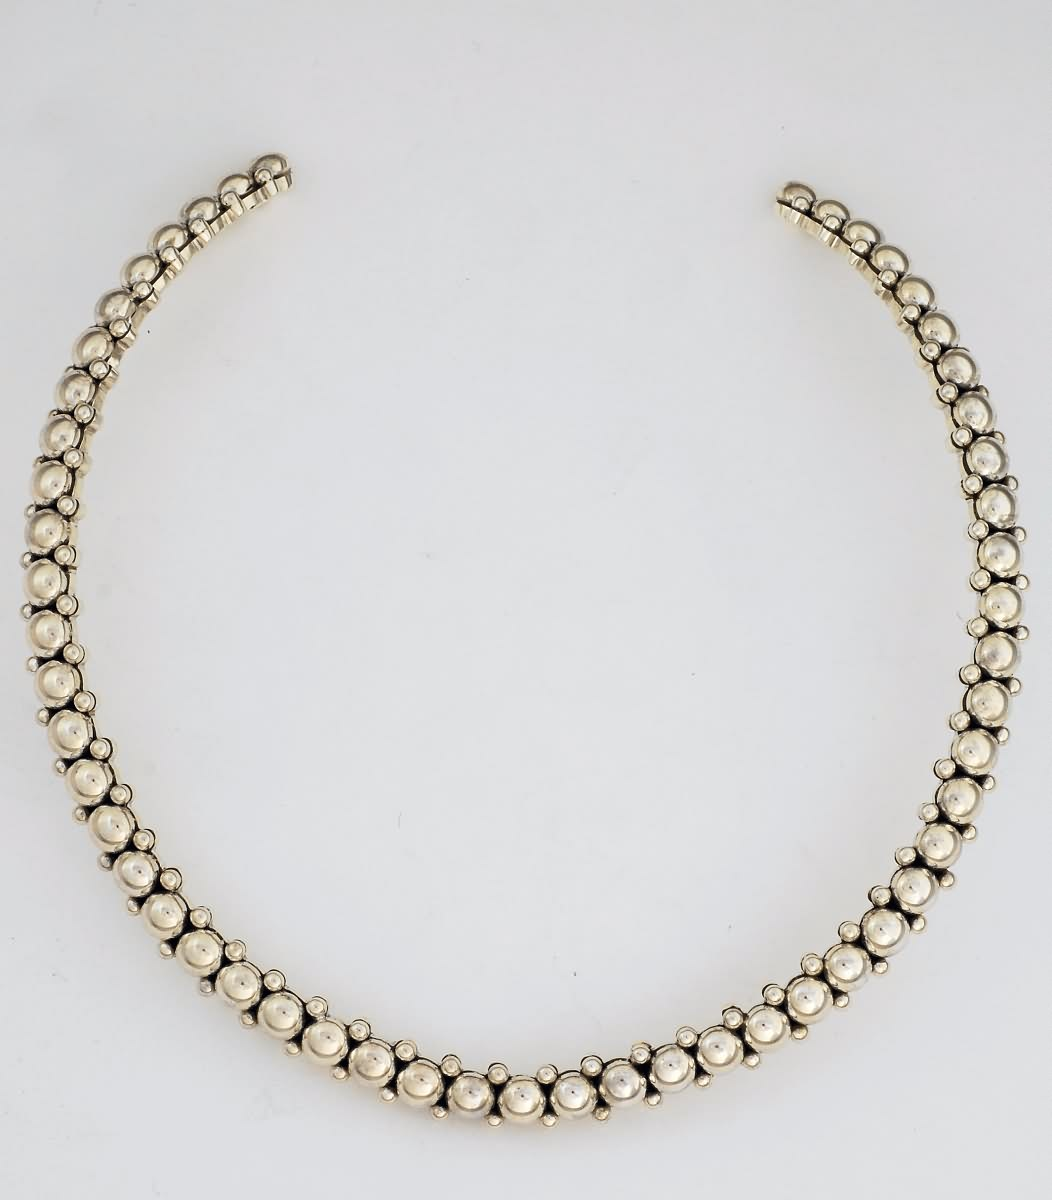 Collar, Solid Sterling Silver by Artie Yellowhorse (Navajo)